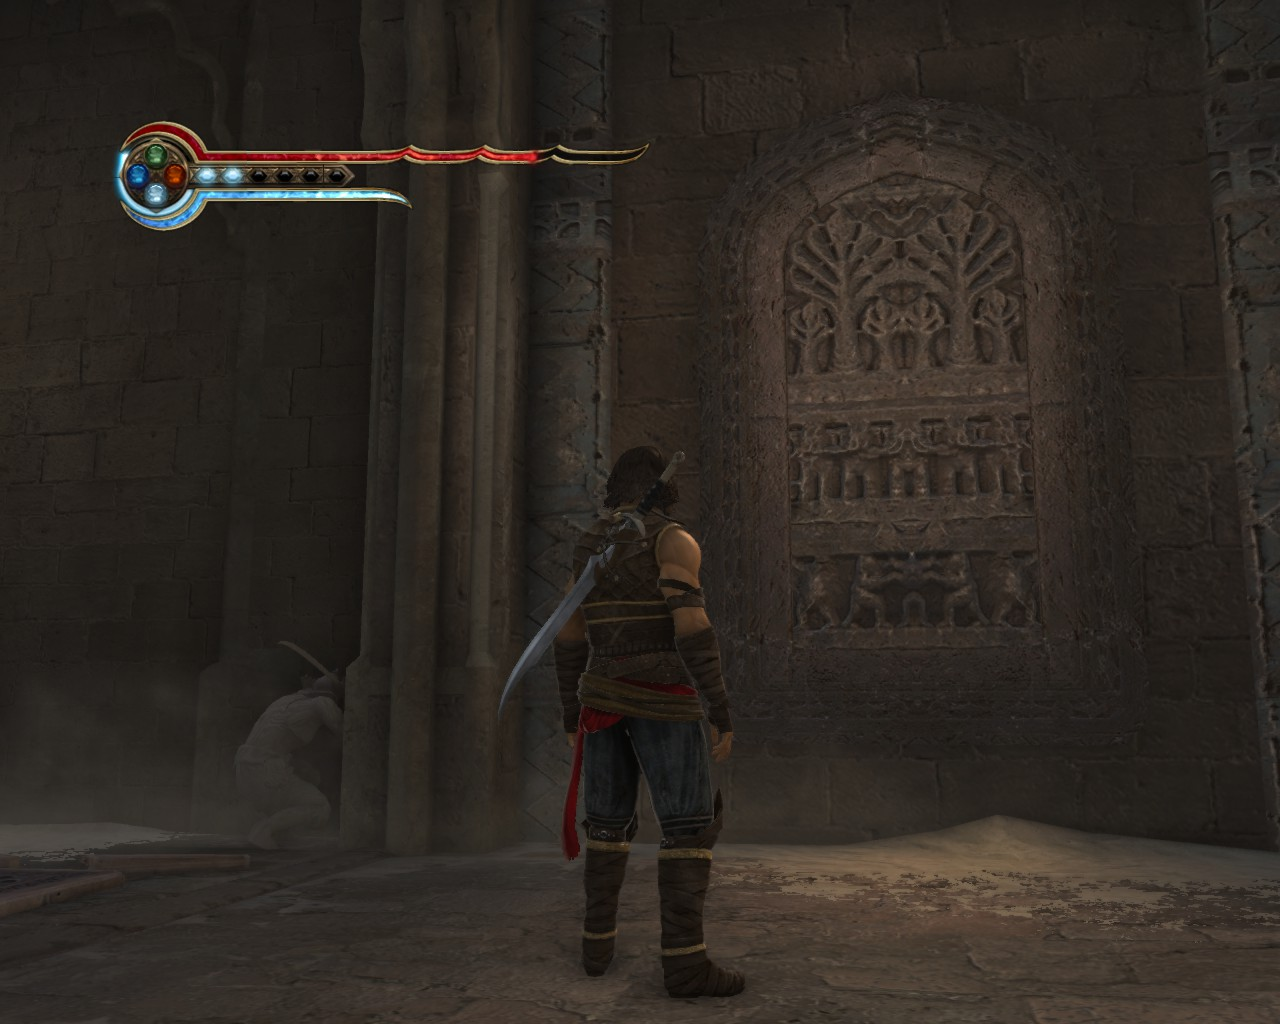 Prince of Persia 2014-06-03 23-11-27-91.jpg - Prince of Persia: The Forgotten Sands